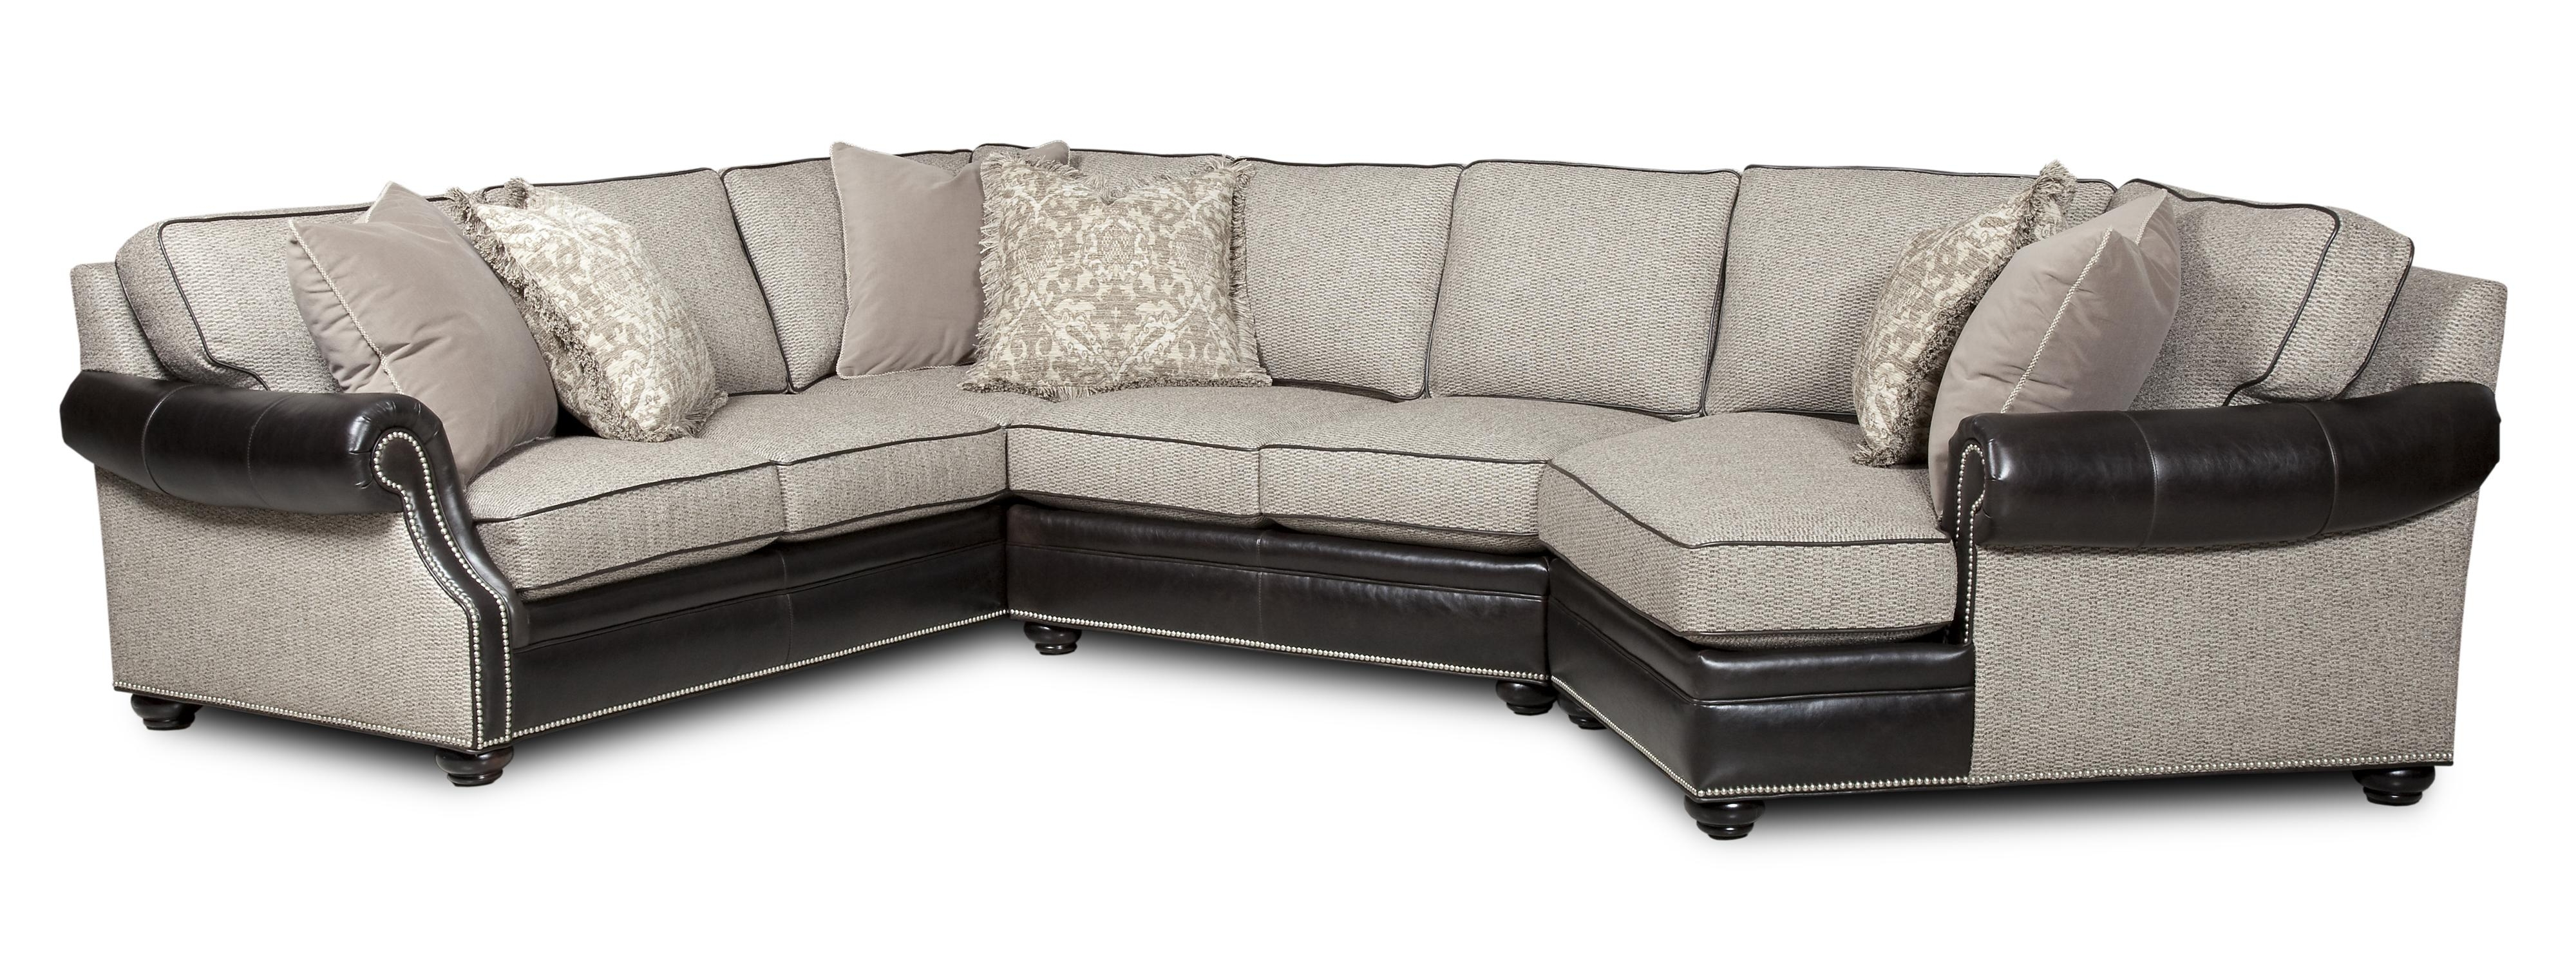 Well Known Visalia Ca Sectional Sofas With Bradington Young Warner Three Piece Sectional Sofa With Laf (View 19 of 20)